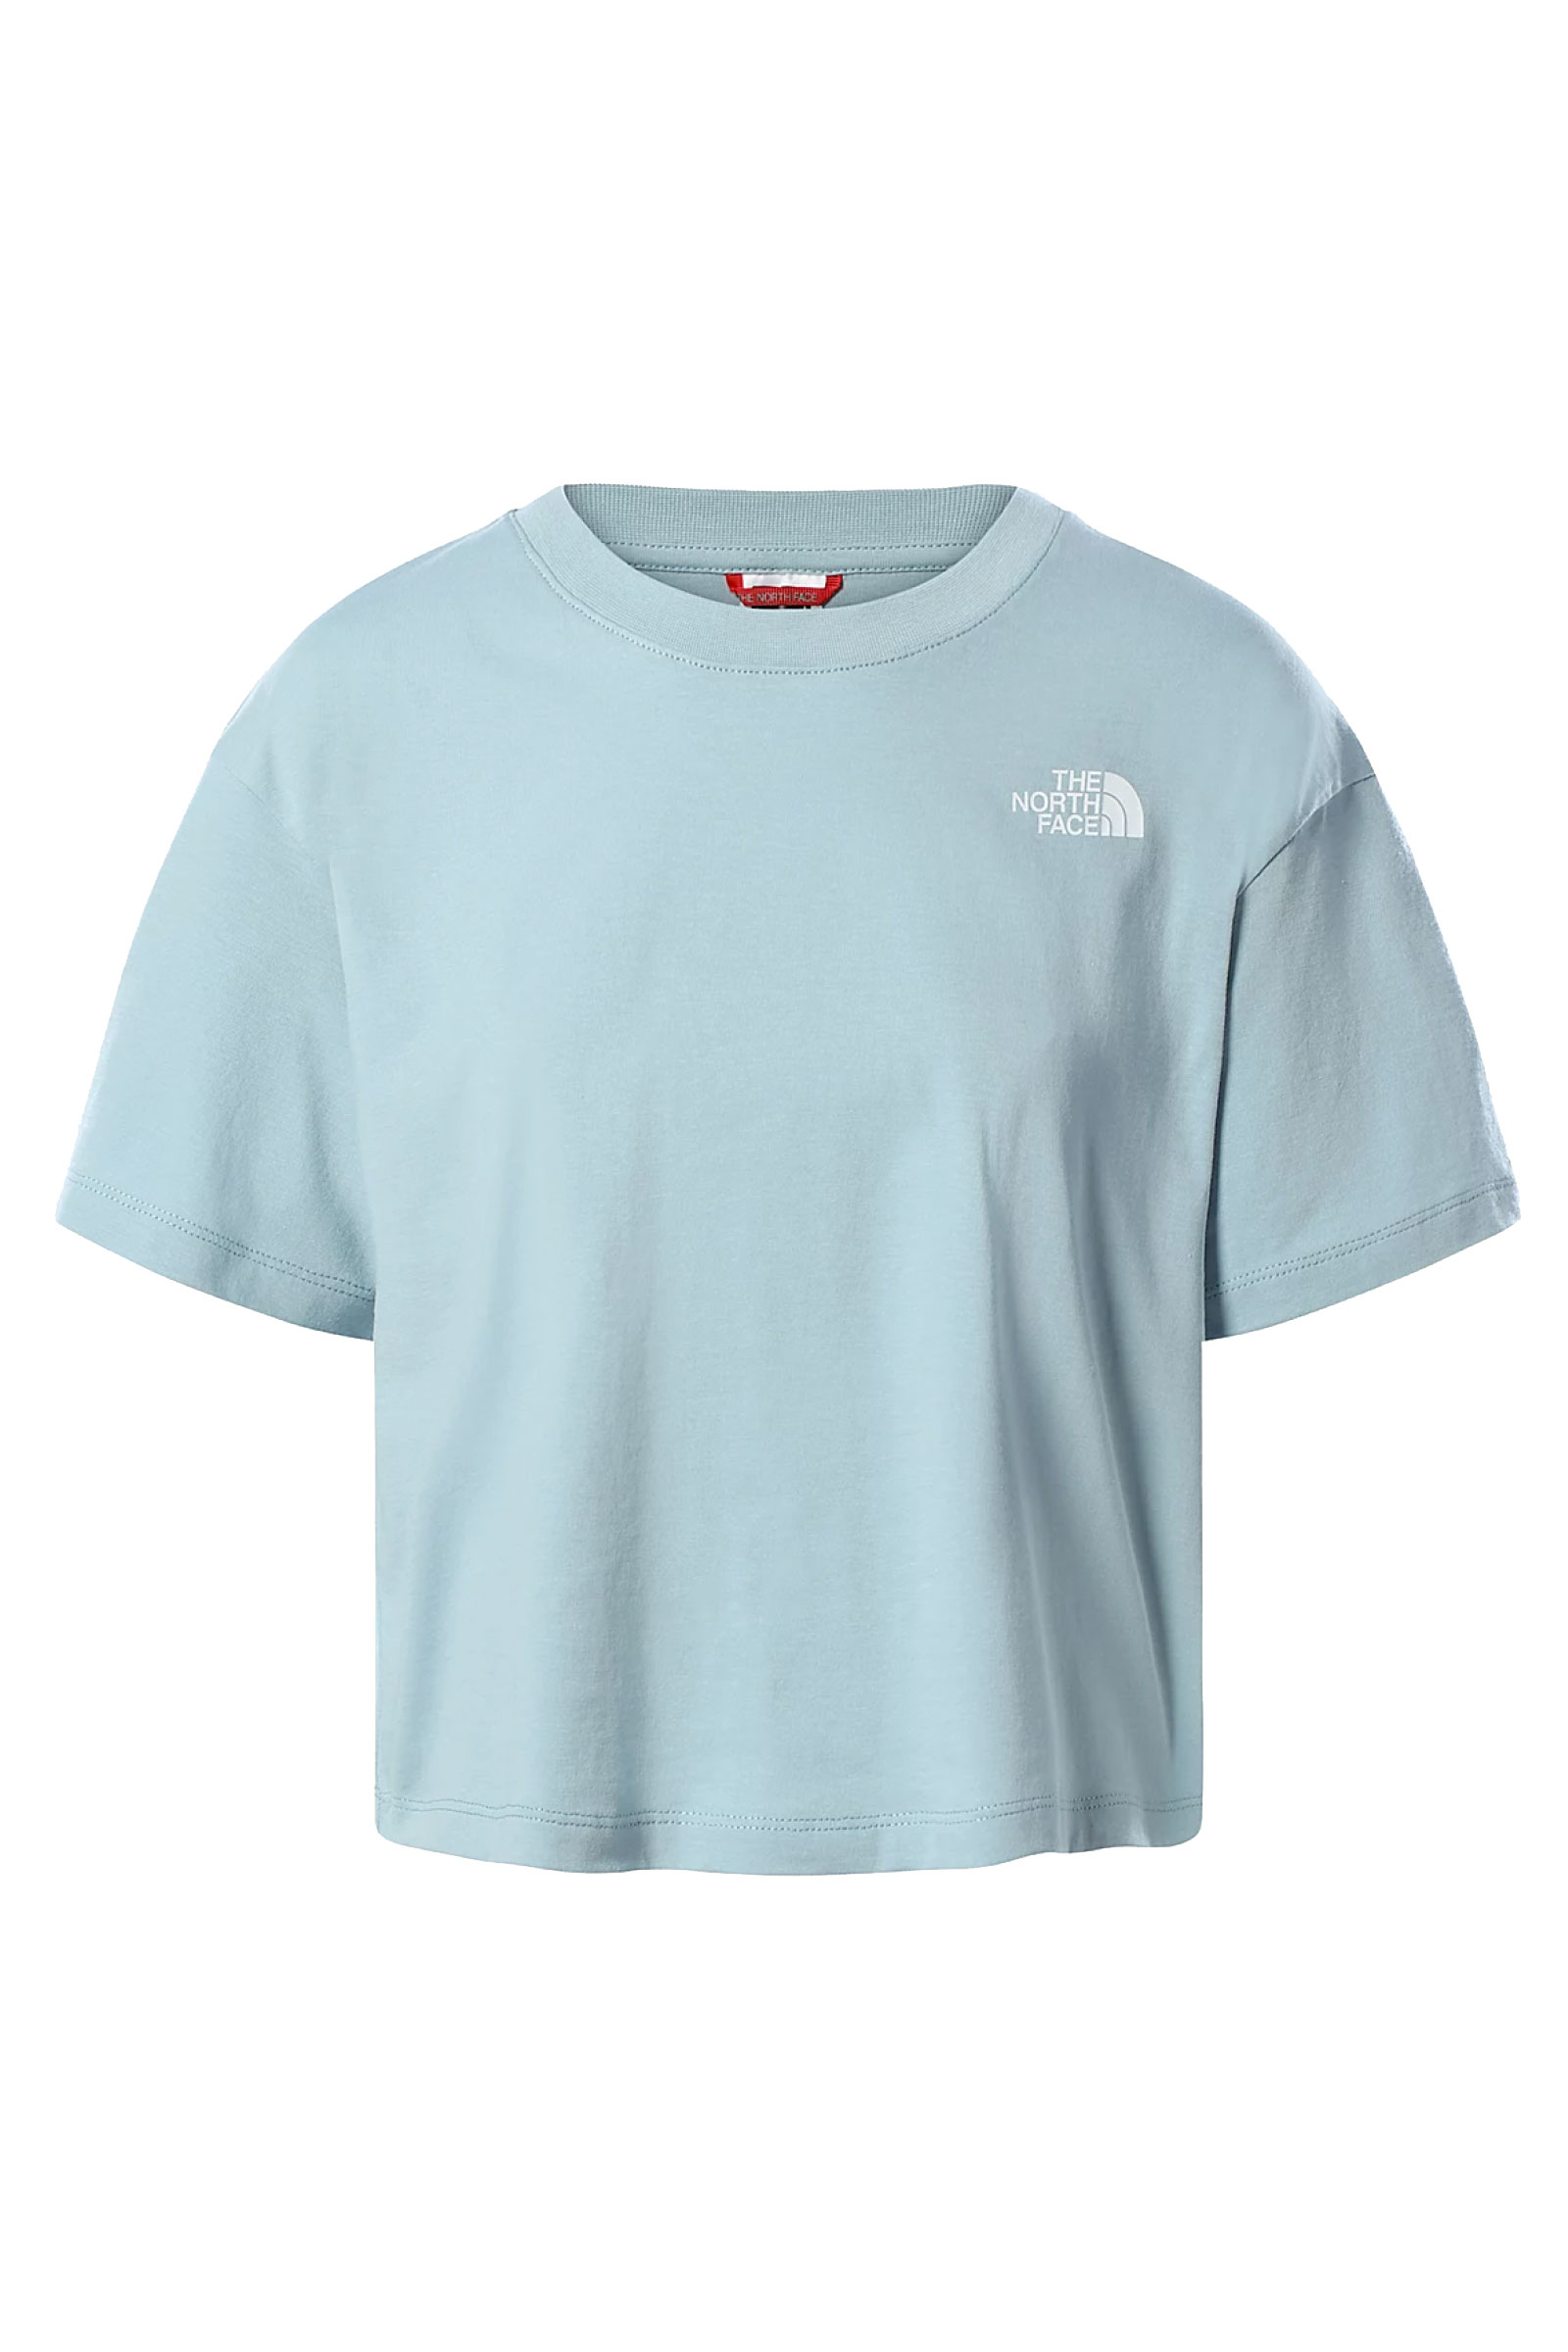 THE NORTH FACE | T-Shirt | NF0A4SYCBDT1